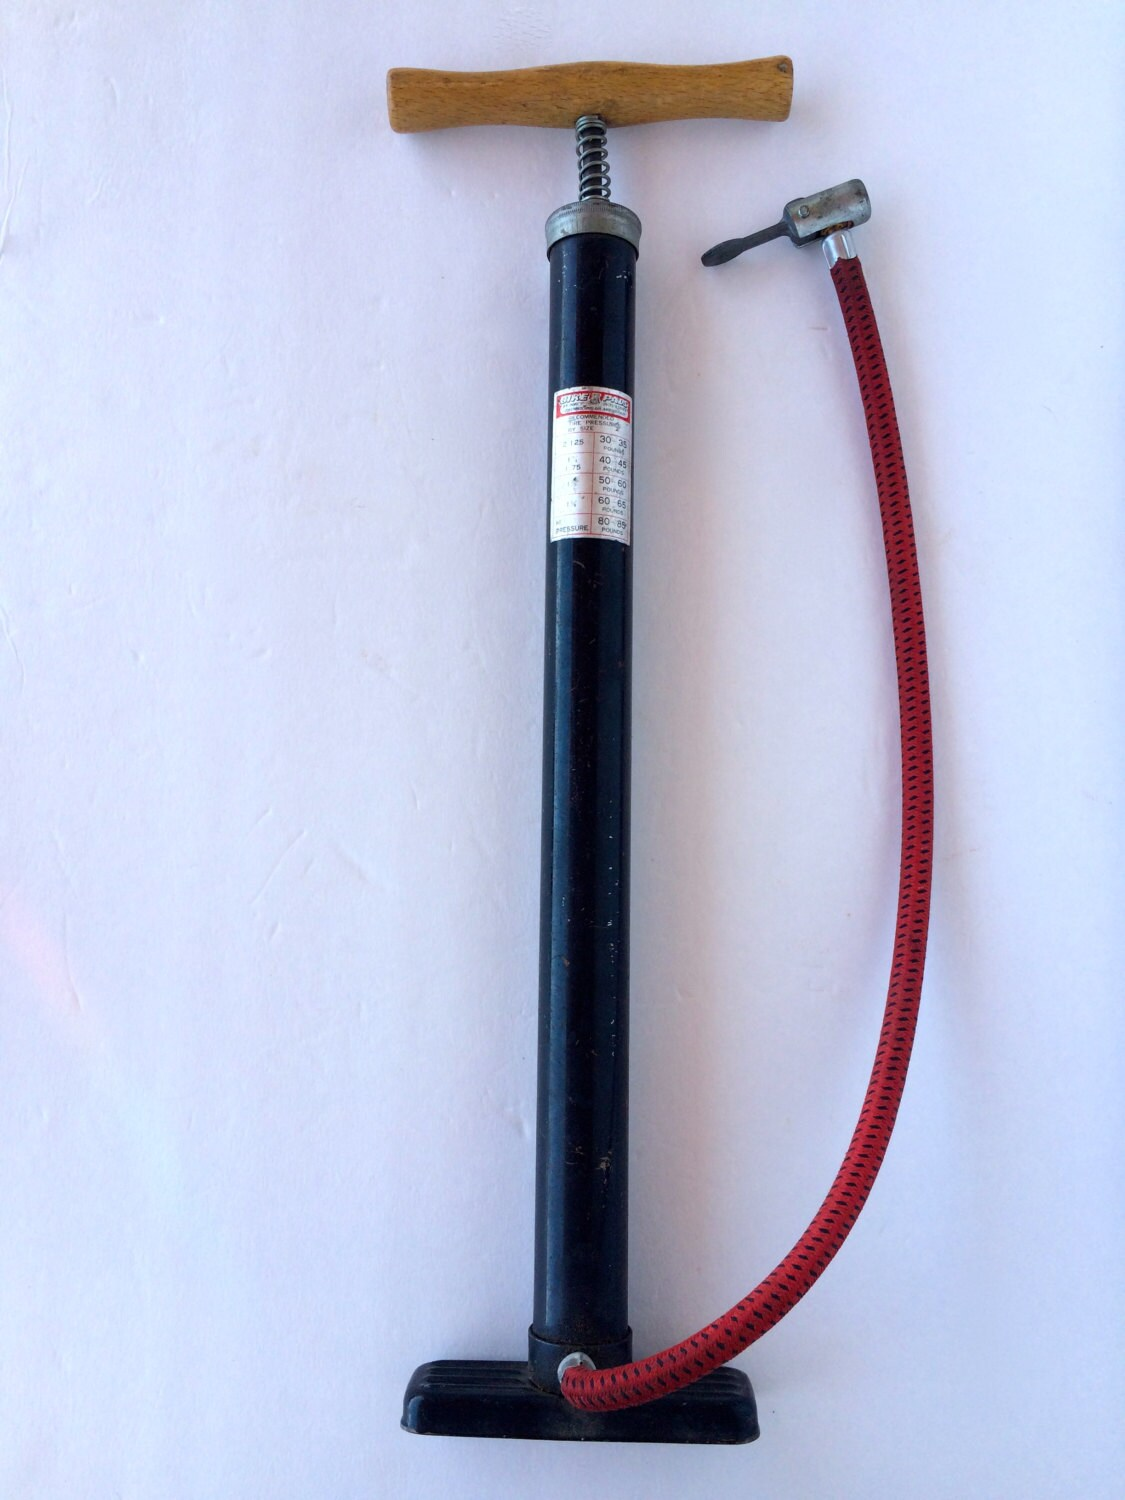 Vintage Bicycle Tire Pump Bike Pals Bike Pump By Dorcy